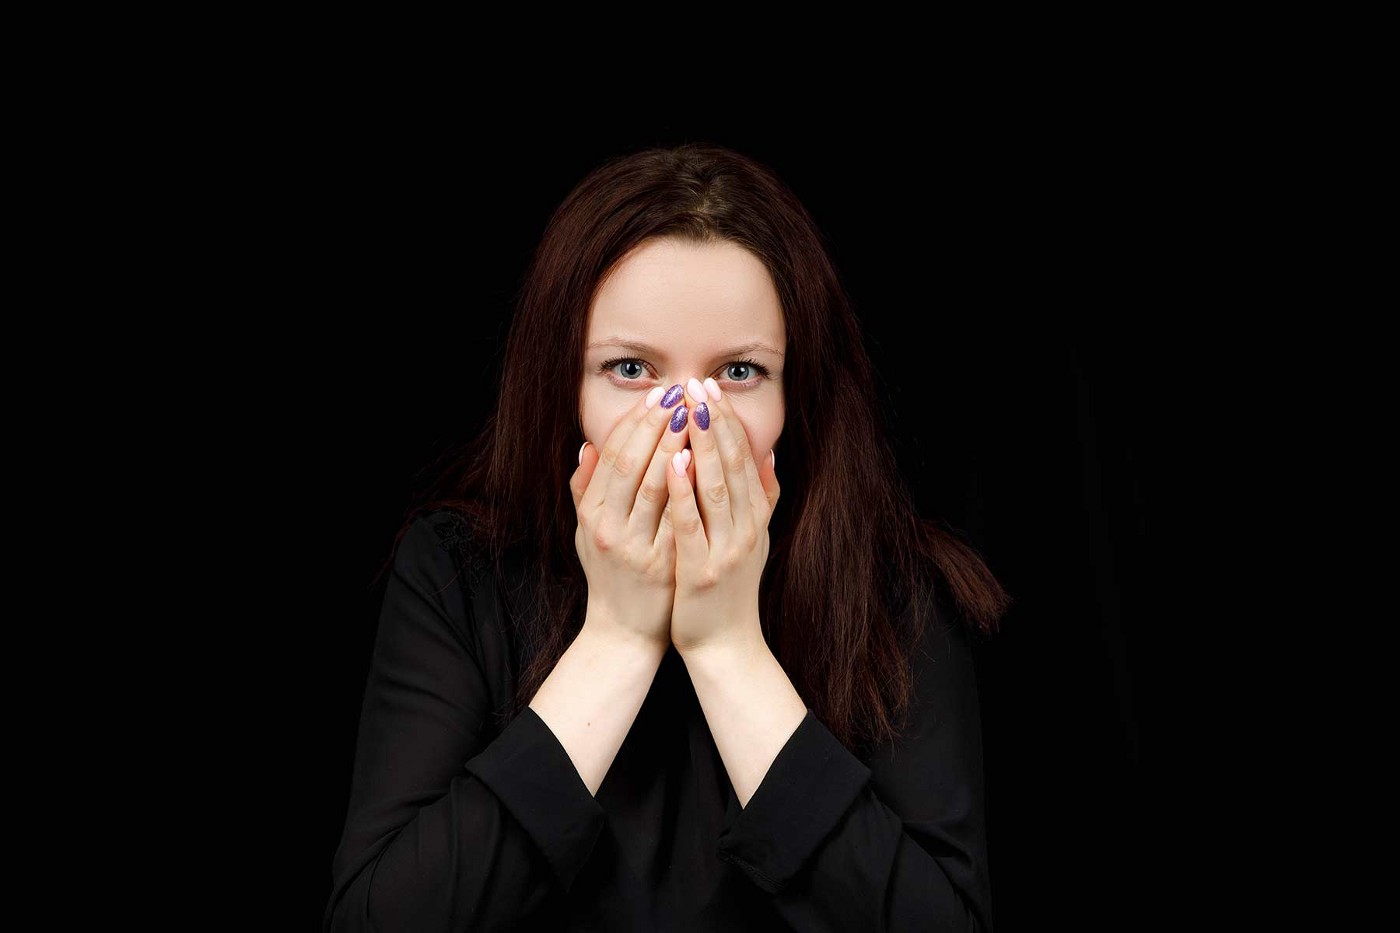 A woman covers her mouth and nose with her hands. Here eyes convey a slight level of shock.